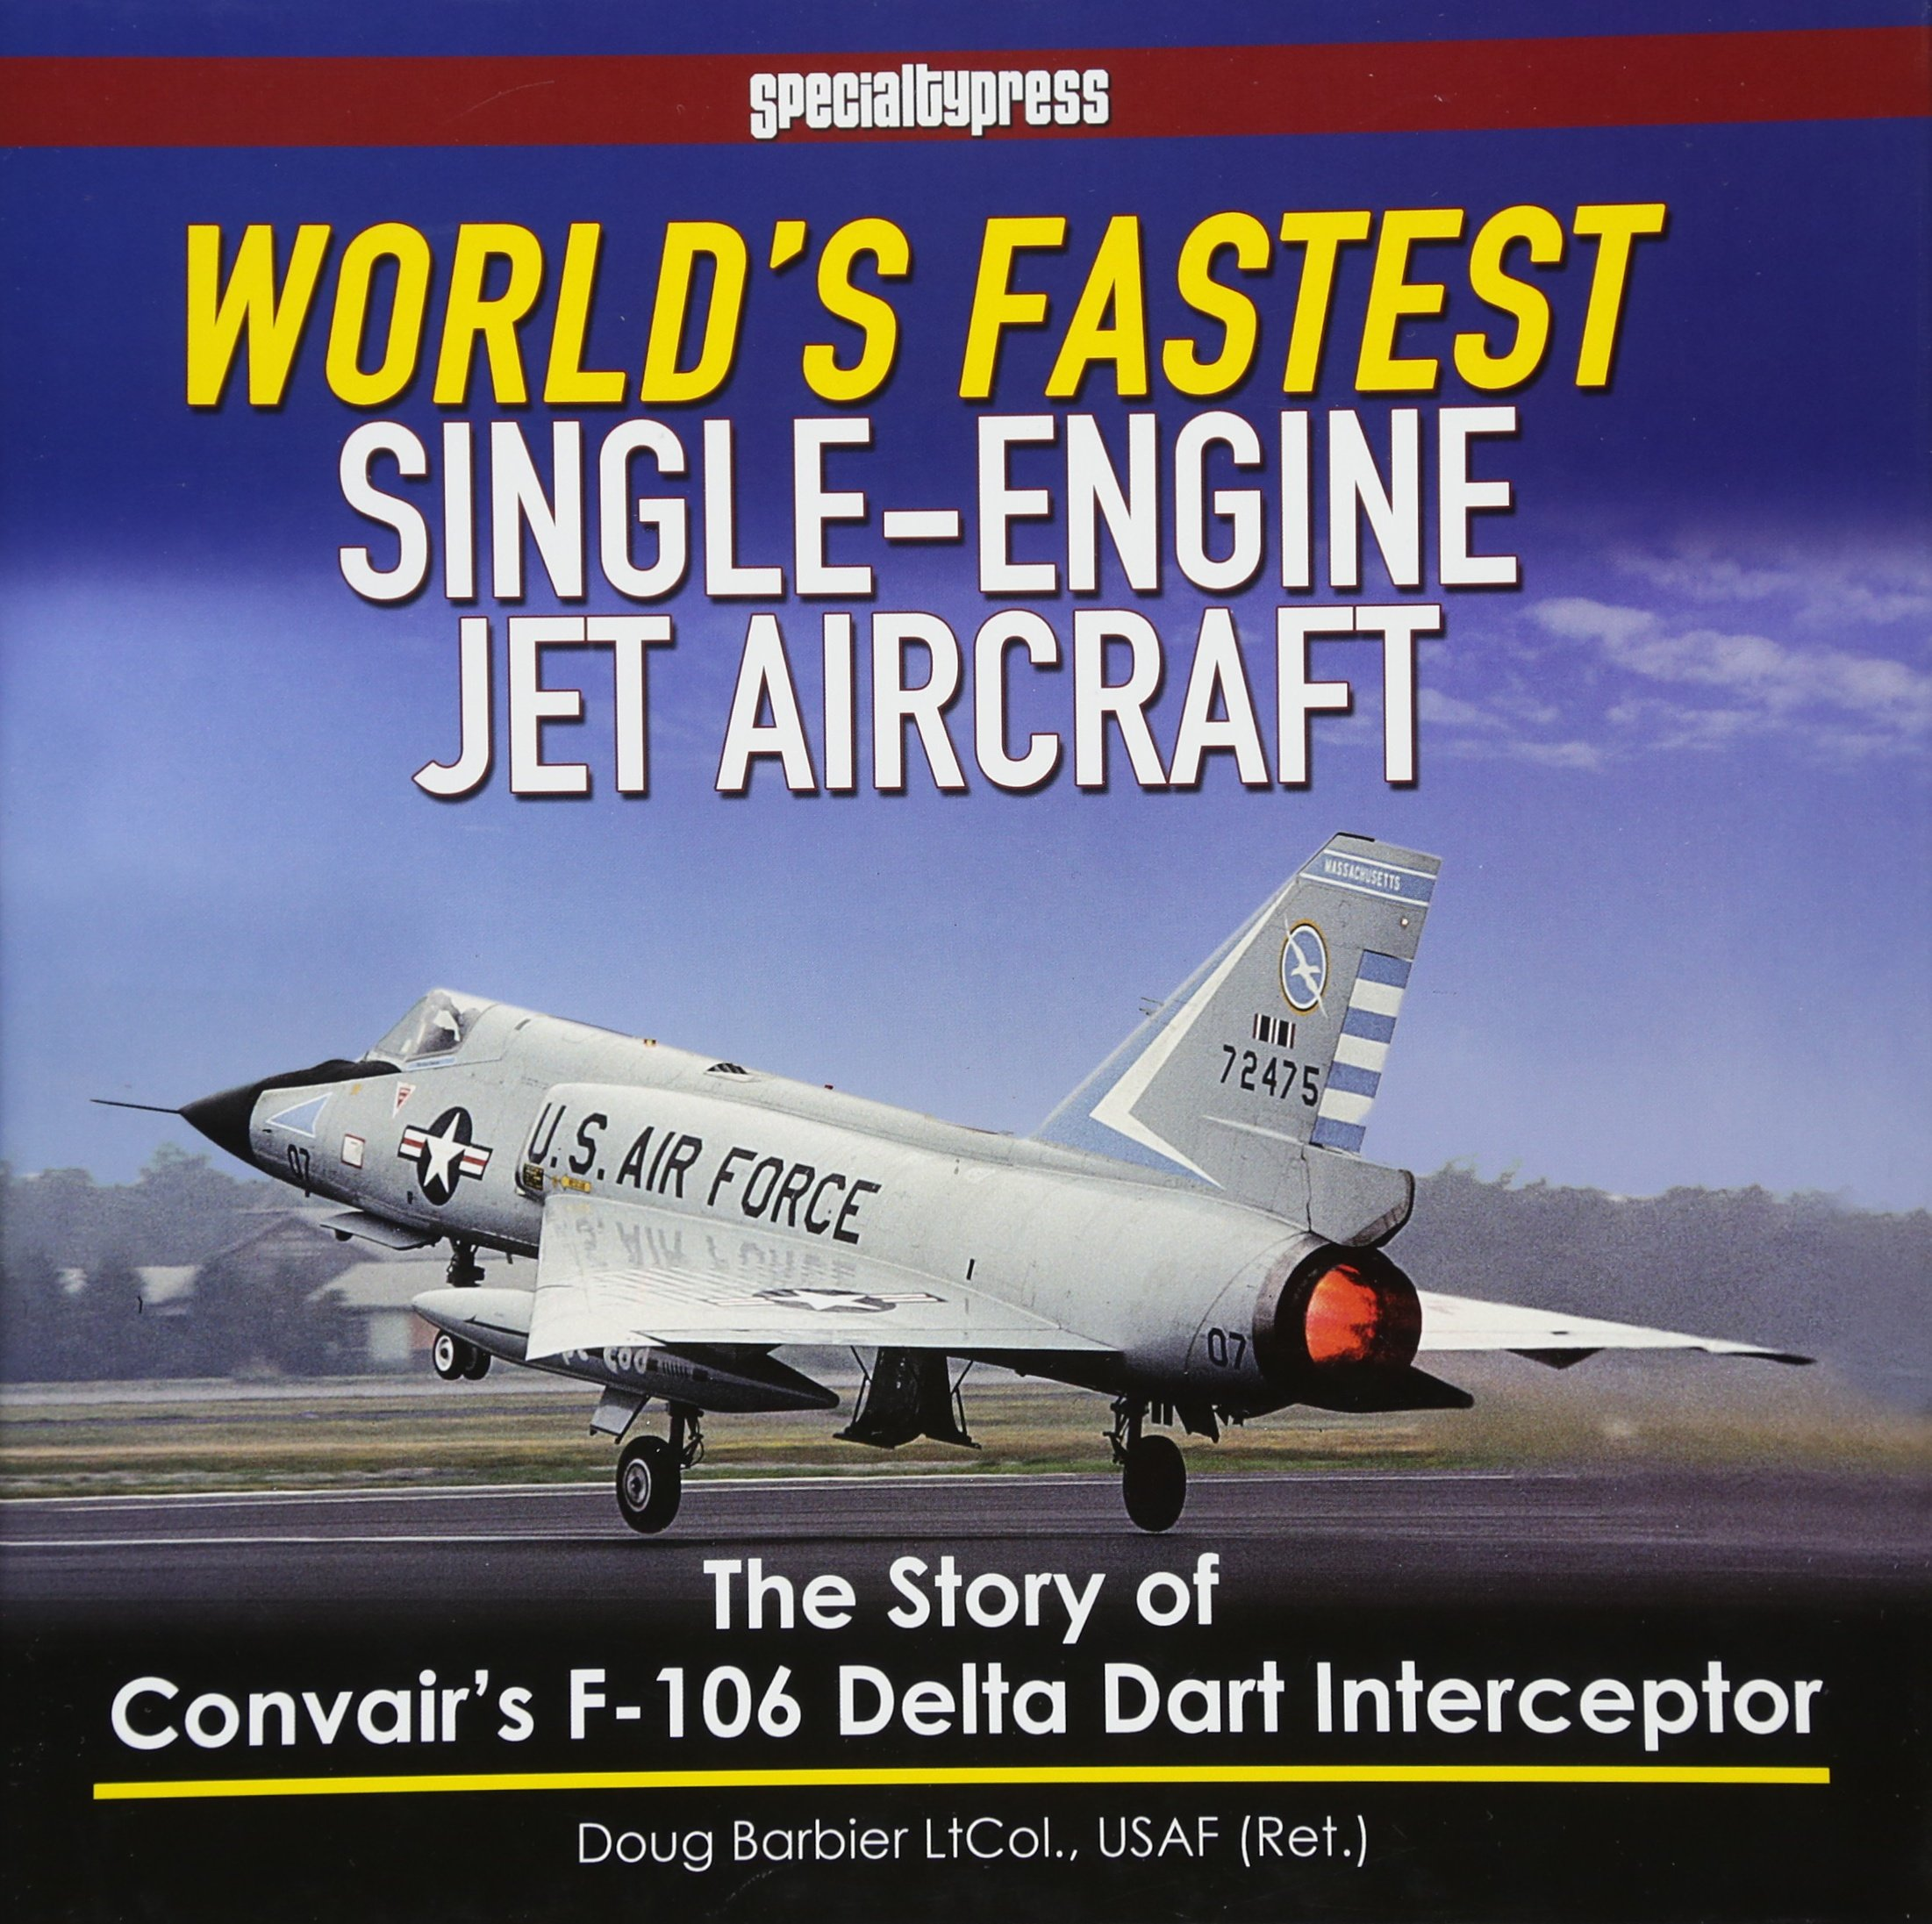 Fastest Jet In The World >> World S Fastest Single Engine Jet Aircraft The Story Of Convair S F